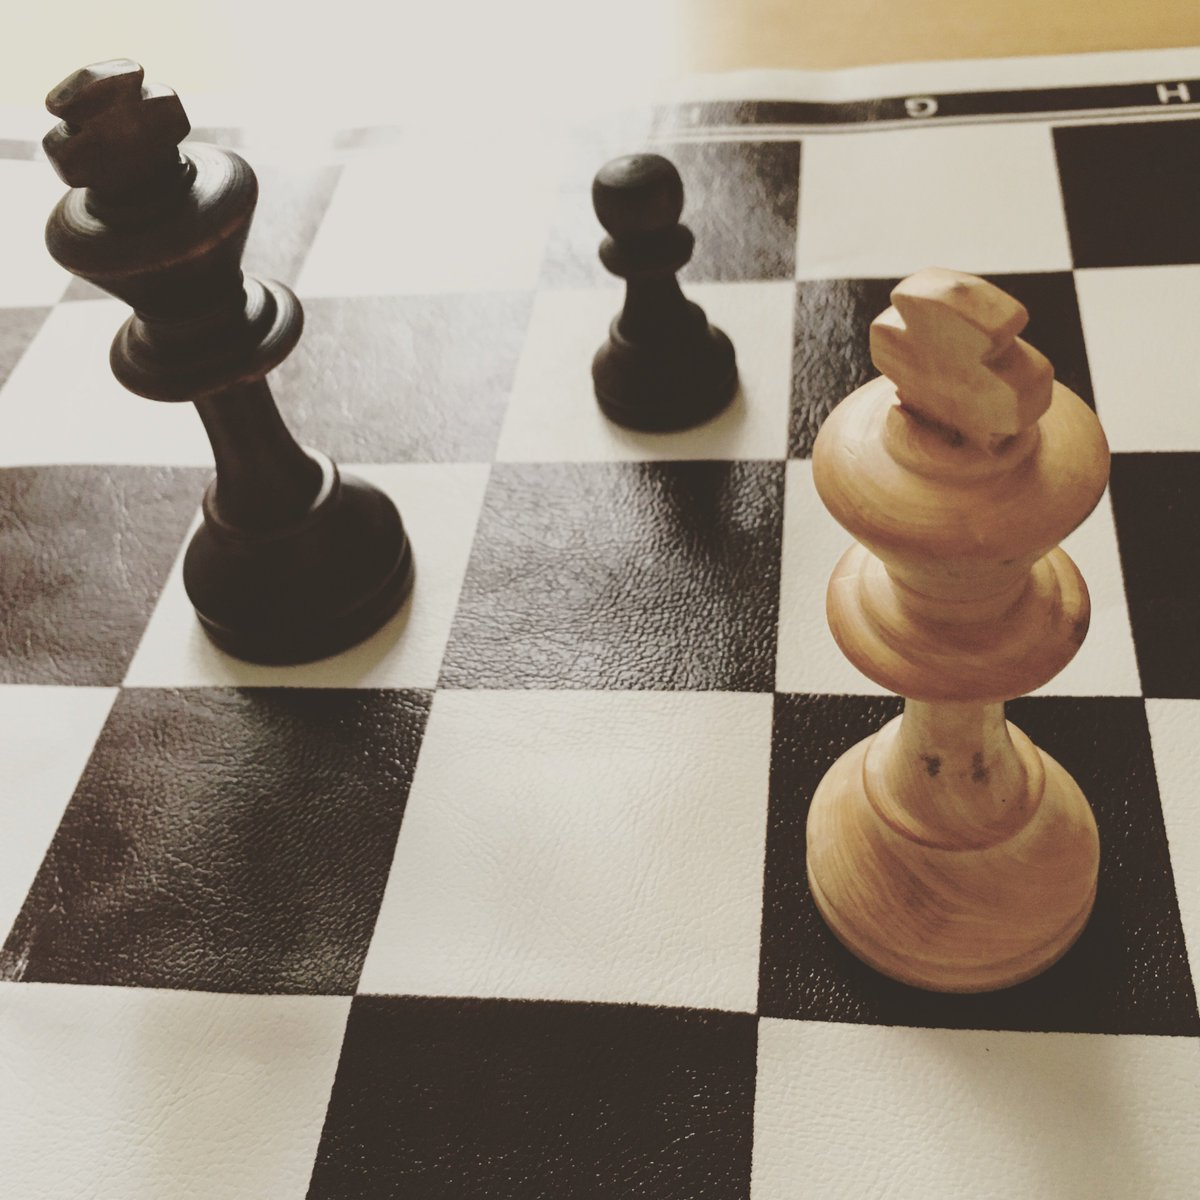 HAPPY CHESS DAY! :) Play chess and be happy! :) https://t.co/qsgHSxYokd